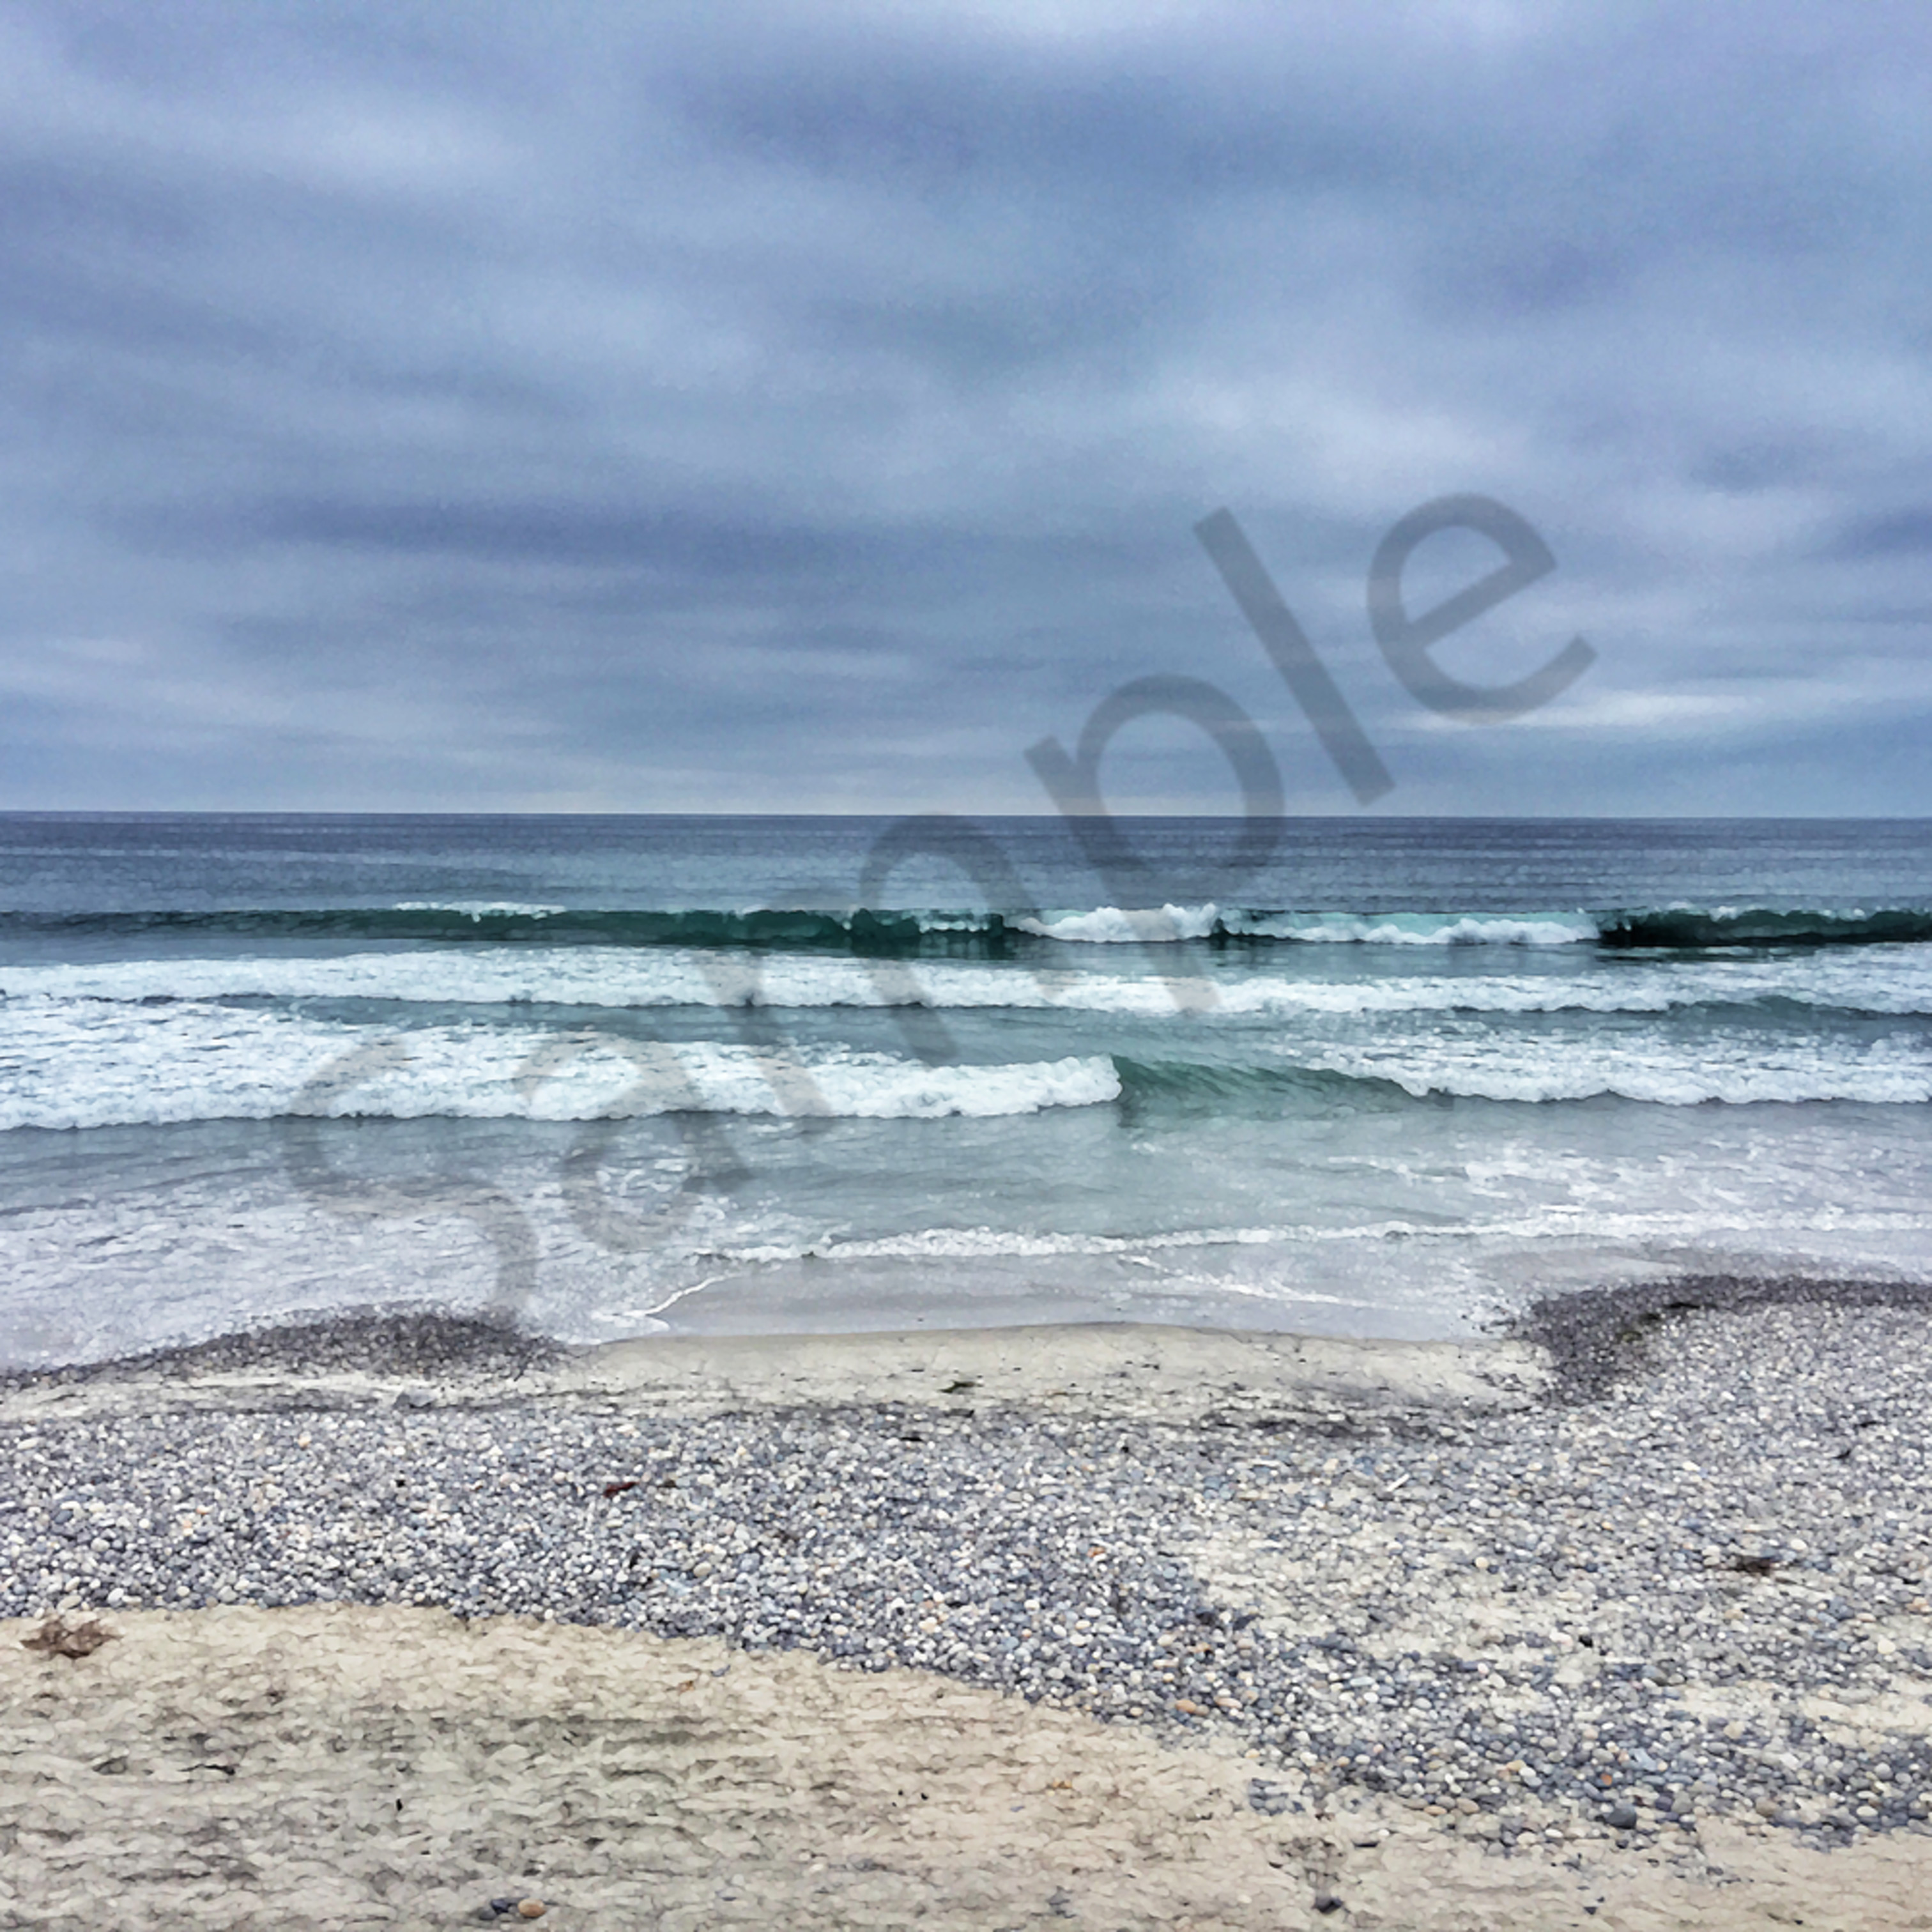 Img 0855 gloomy day california coastline 2017   ps paint daubs contrast tag xbt41f